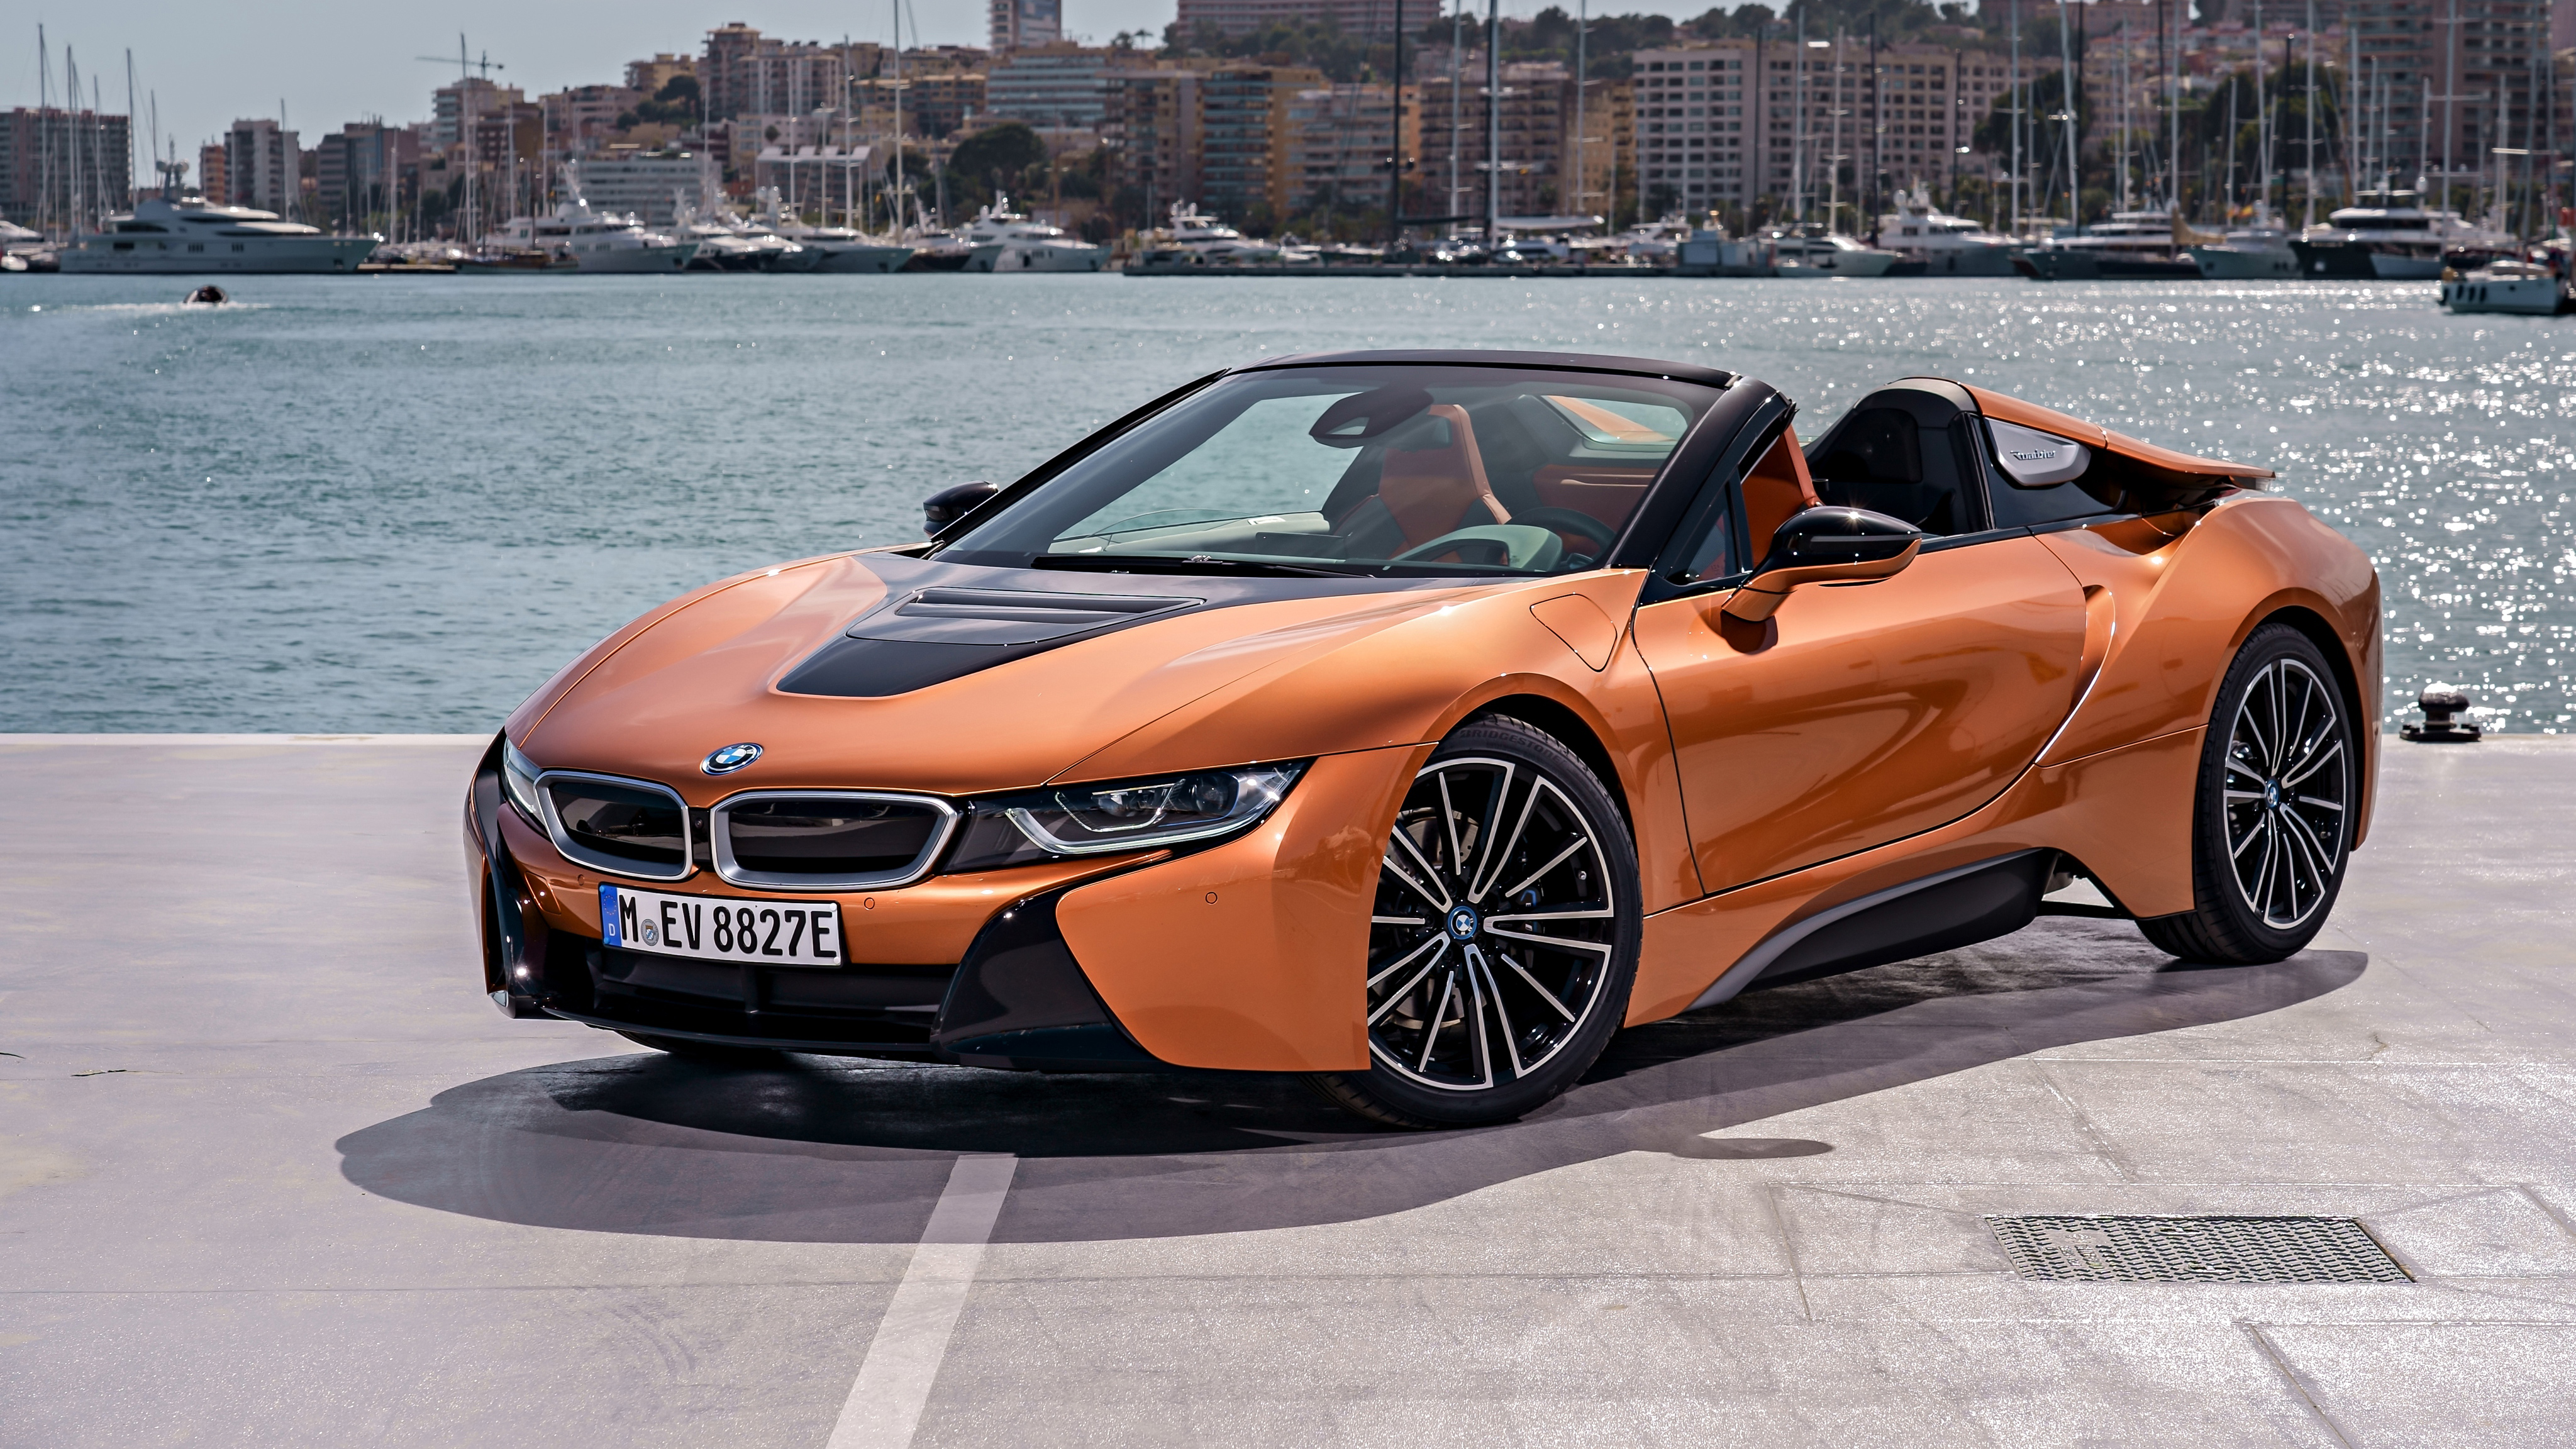 2018 bmw i8 roadster 4k 2 wallpaper hd car wallpapers id 10260. Black Bedroom Furniture Sets. Home Design Ideas